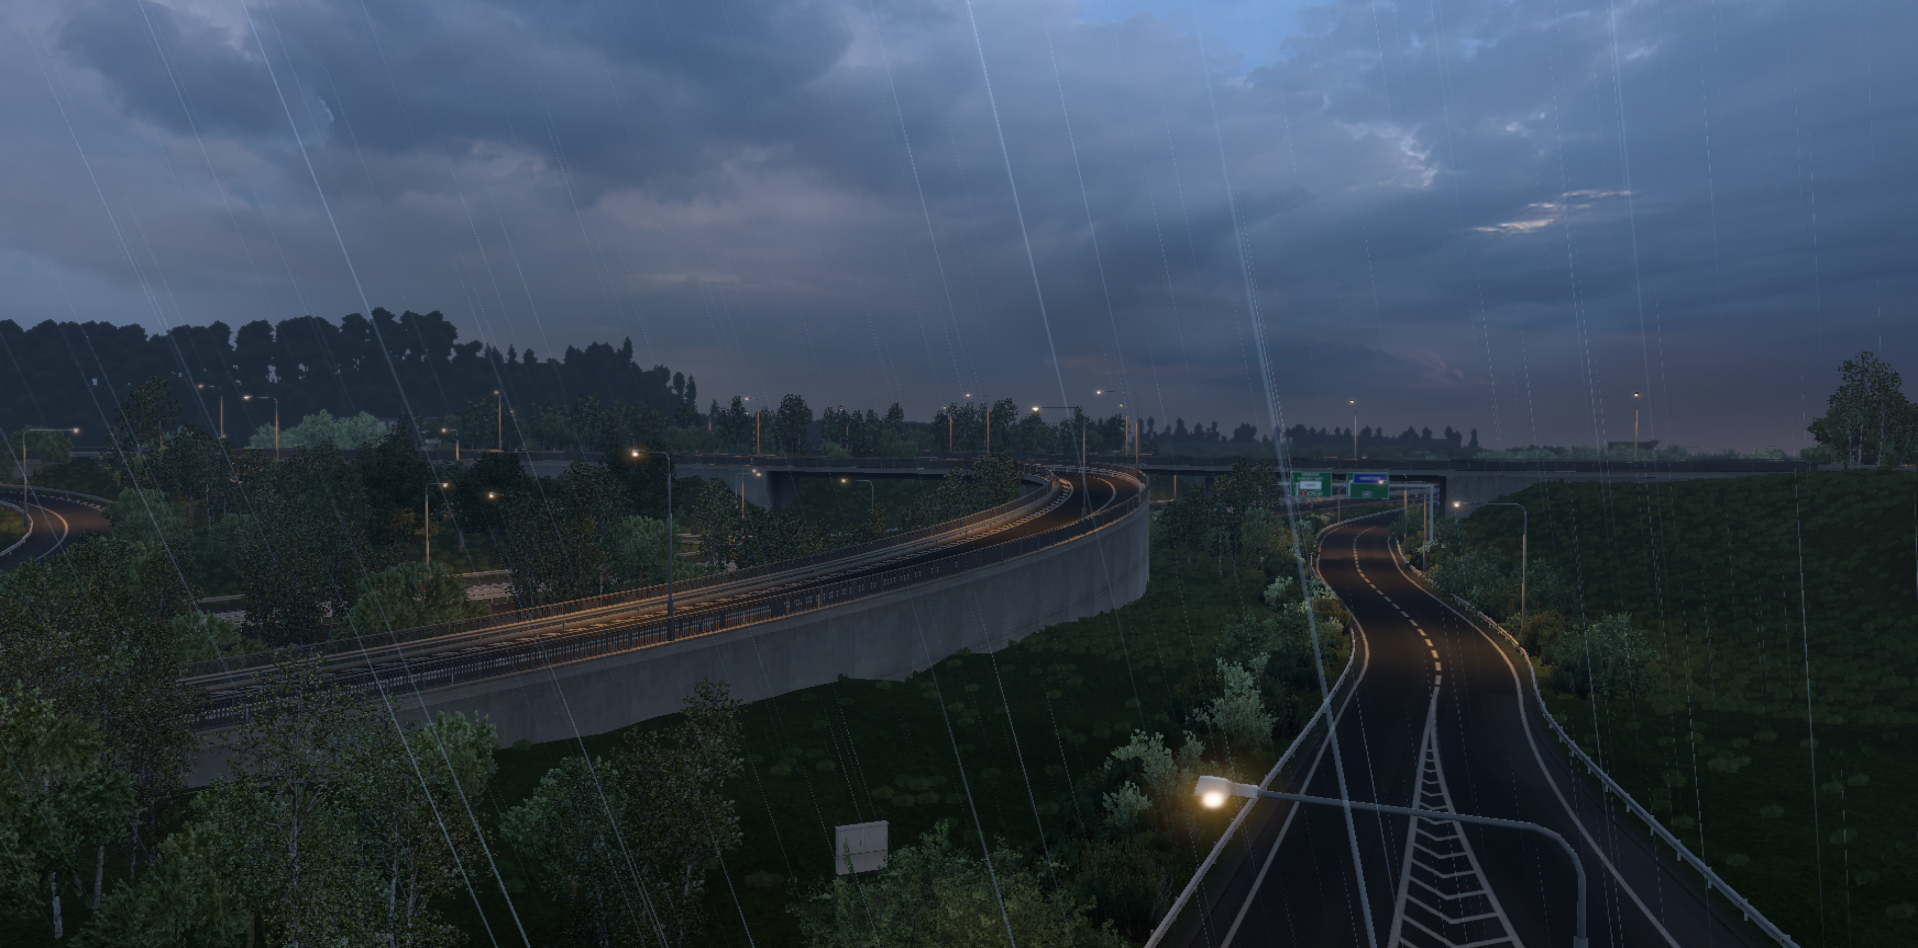 ets2_20210804_144230_00.png